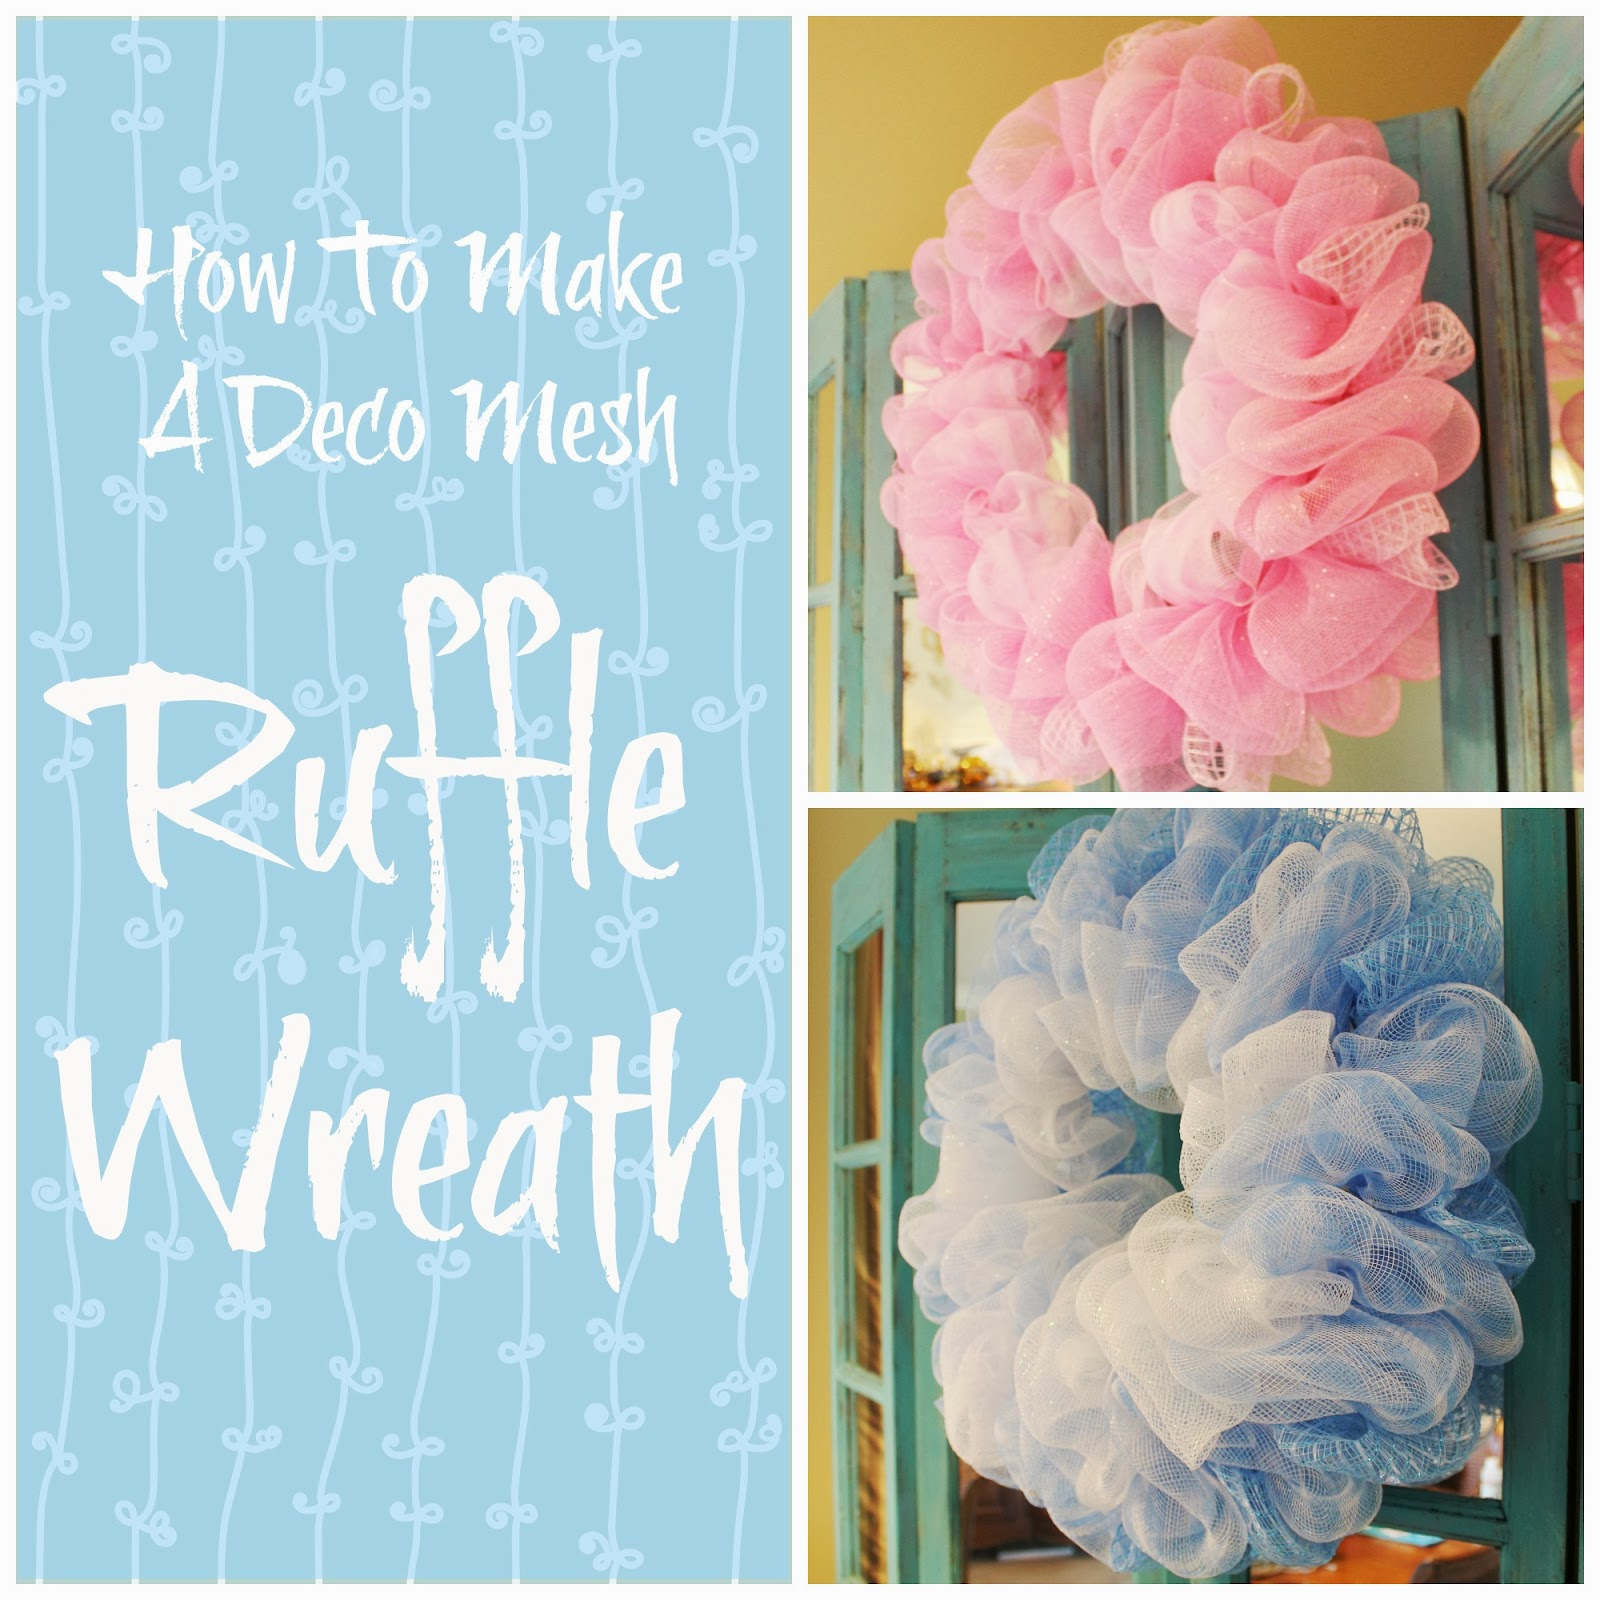 How to make a deco mesh ruffle wreath miss kopy kat how to make a deco mesh ruffle wreath baditri Images